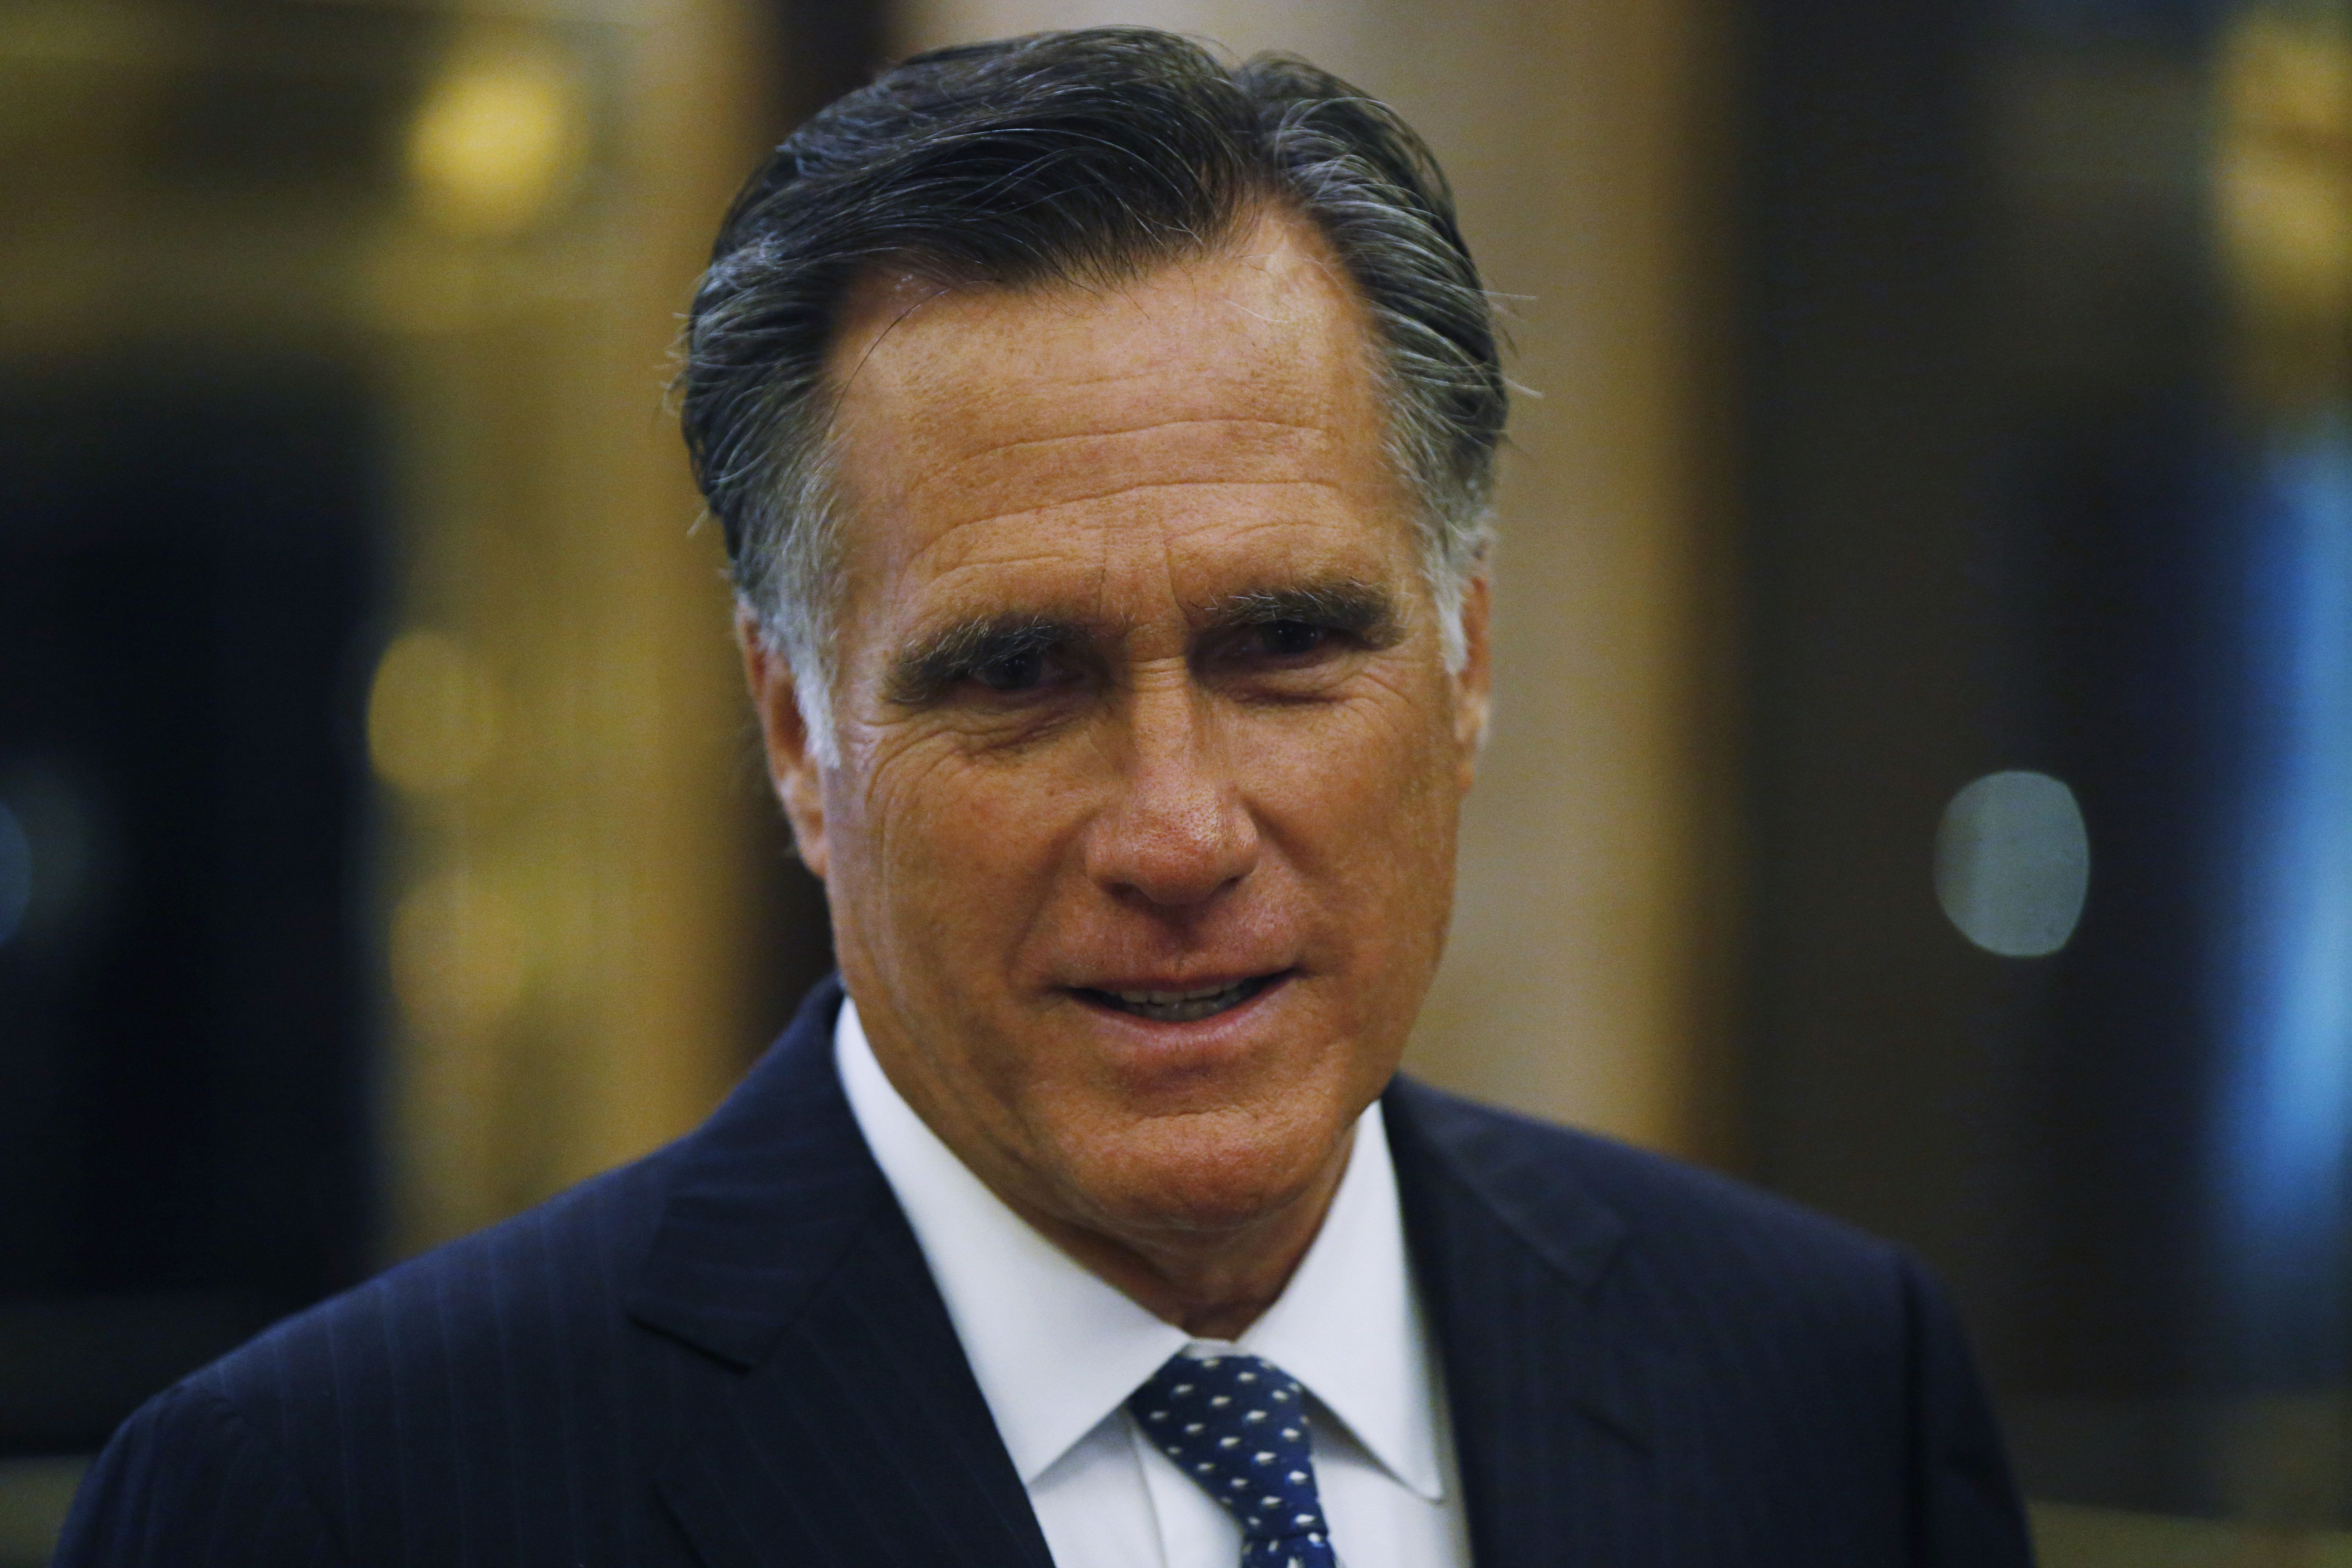 Former Massachusetts Gov. Mitt Romney (R) has said President Donald Trump's reported comments about Haitians and African